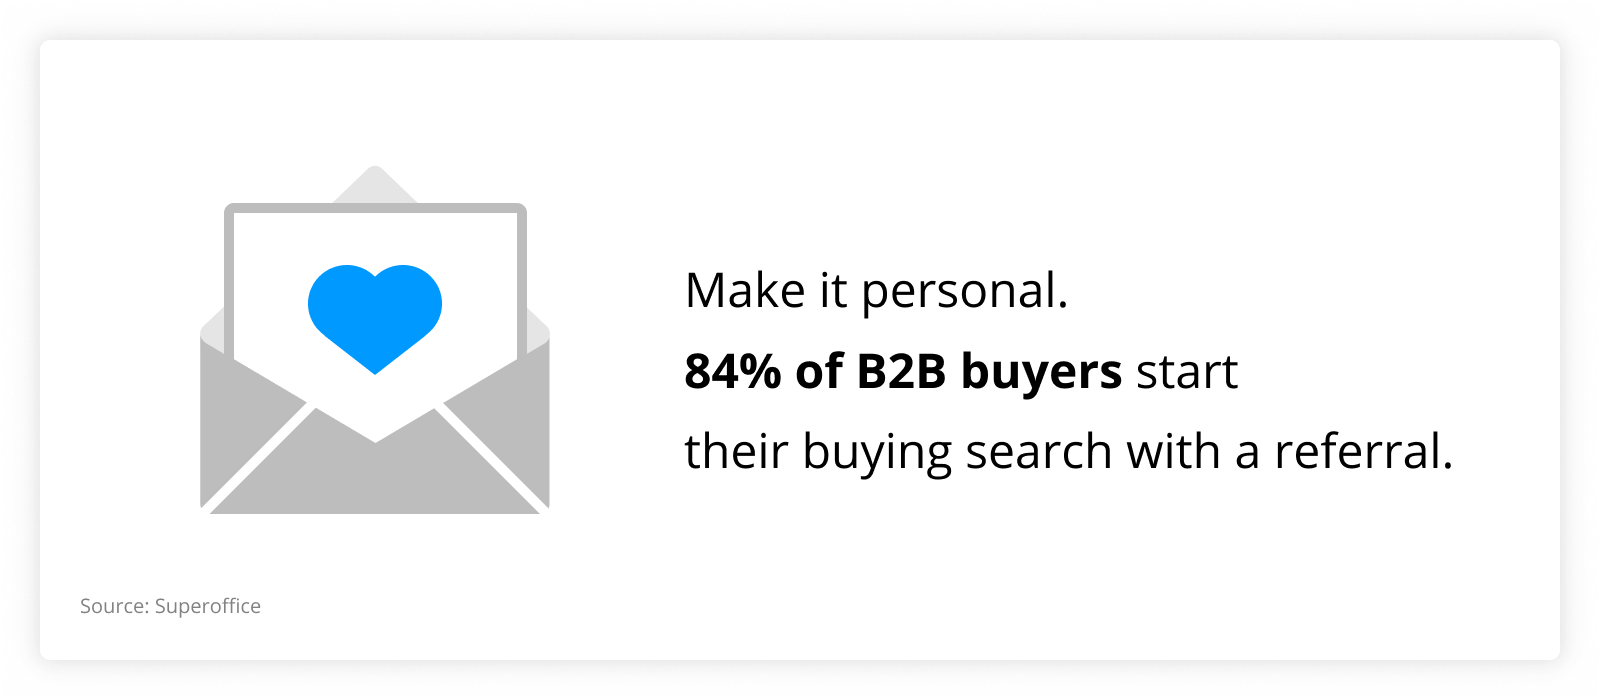 graph showing that 84% of B2B buyers start their buying search with a referral